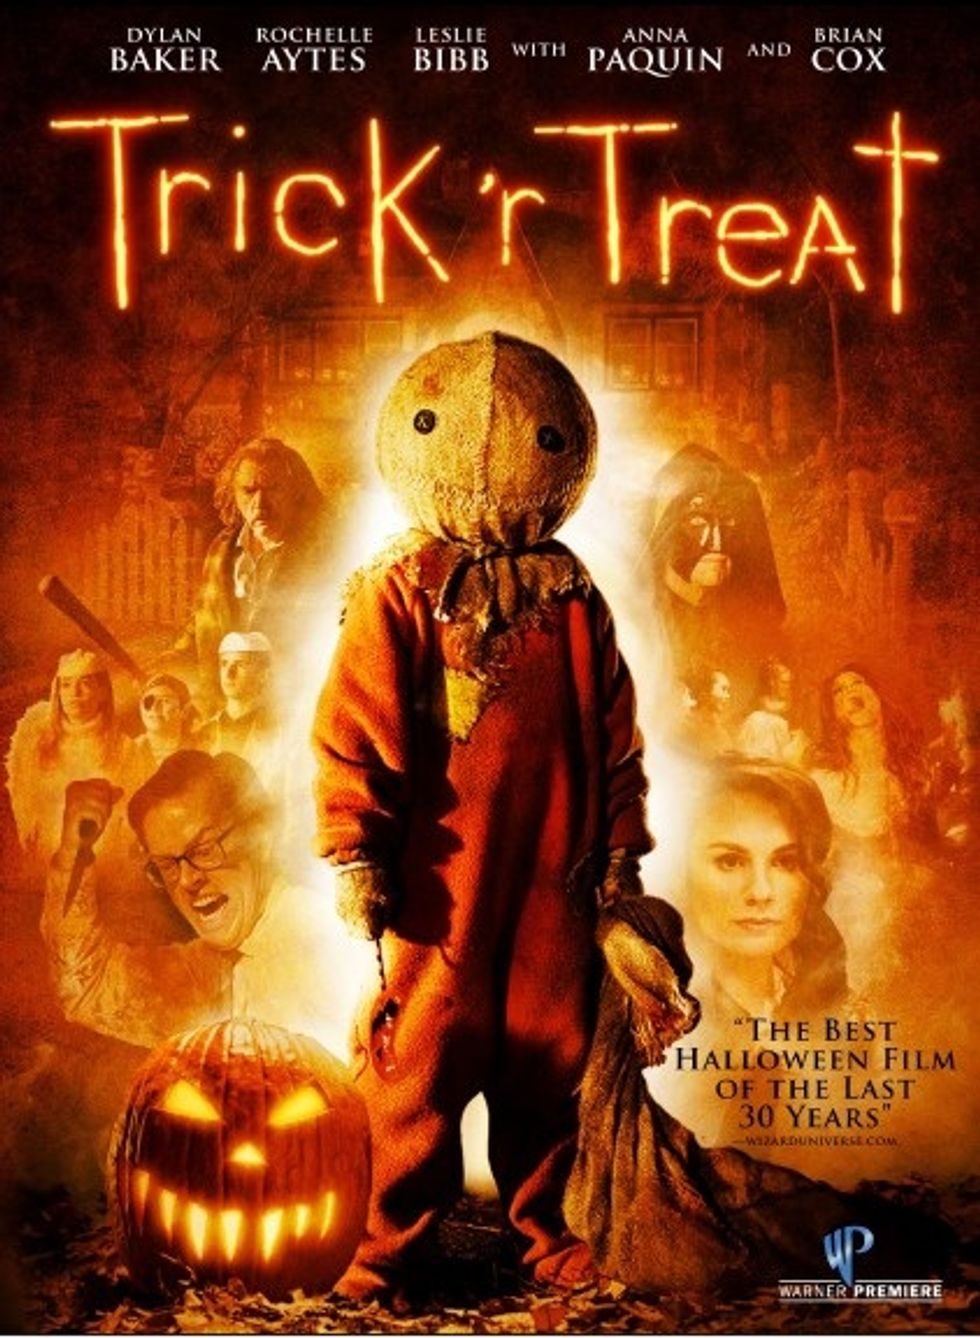 New Halloween Horror Classic: Trick 'R Treat Finally Out On DVD!